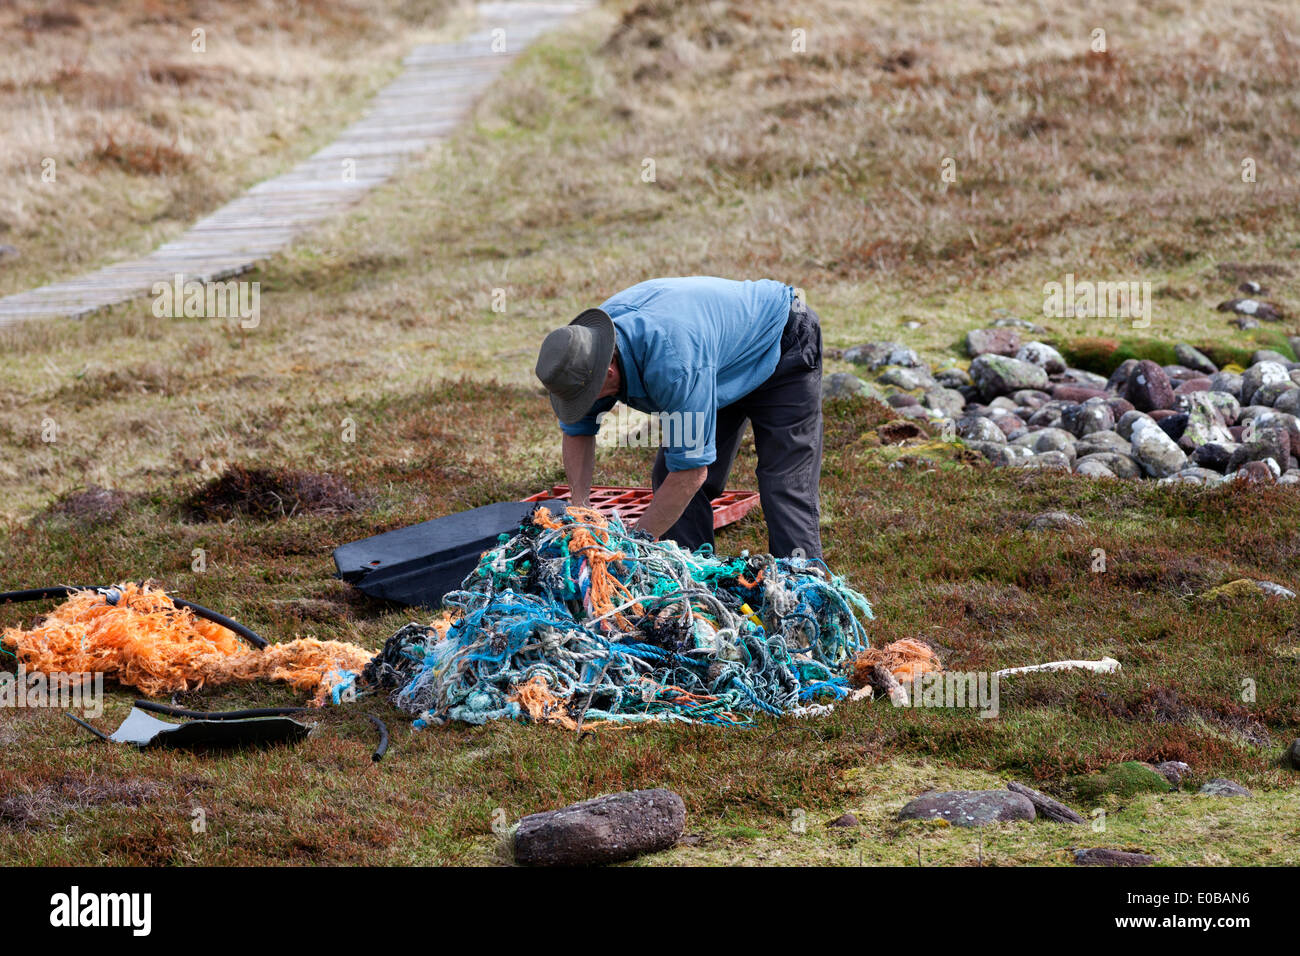 Scottish Wildlife Trust Member Clearing Plastic Debris Washed up on the Beach Handa Island Scotland UK - Stock Image